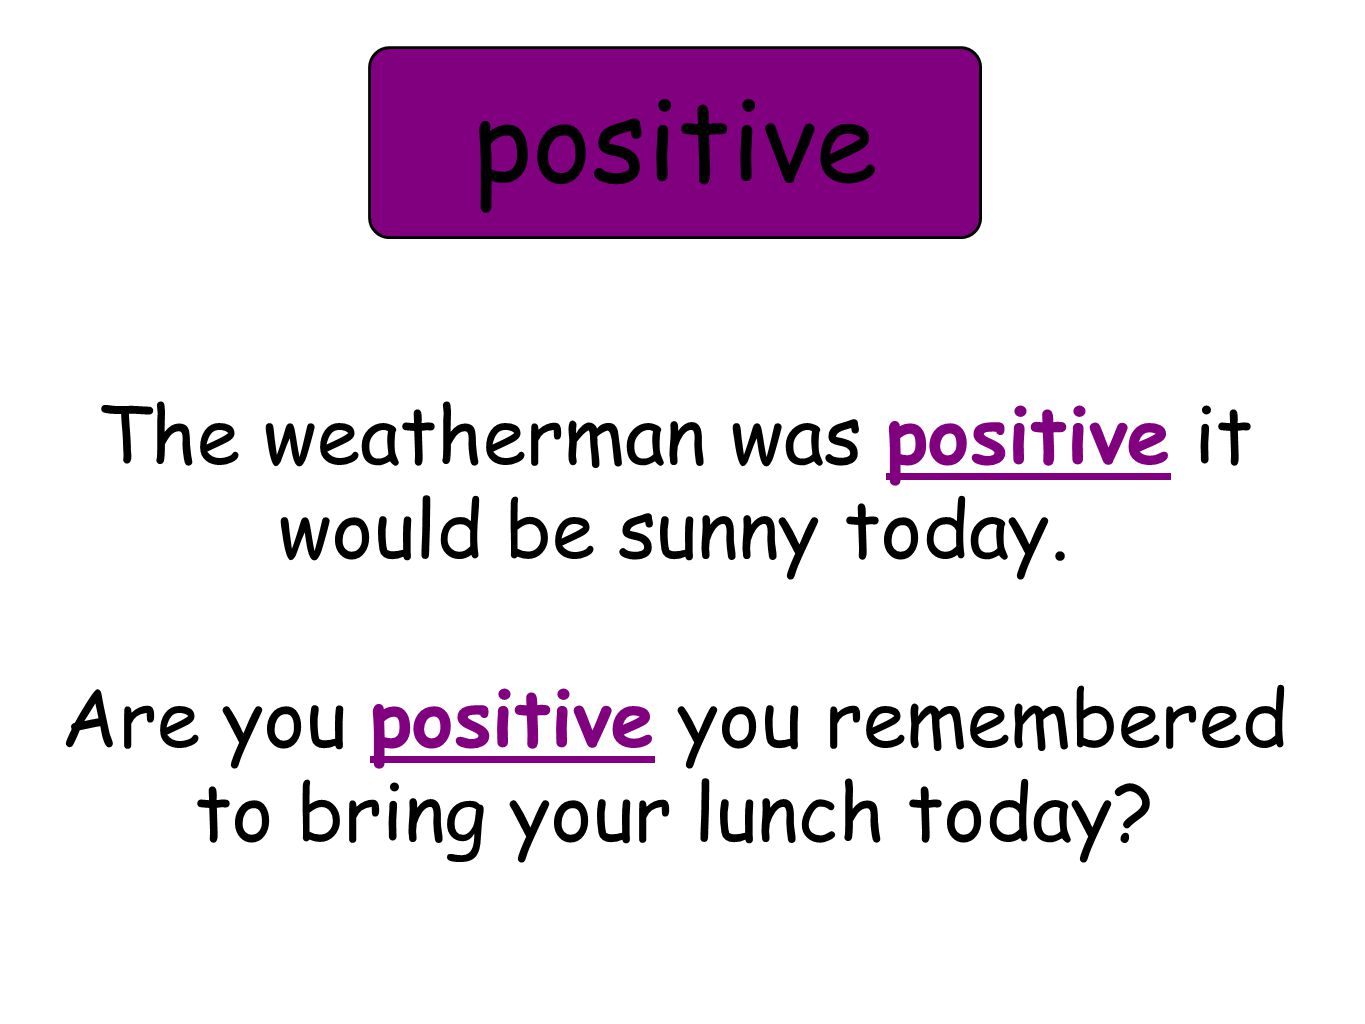 The weatherman was positive it would be sunny today.